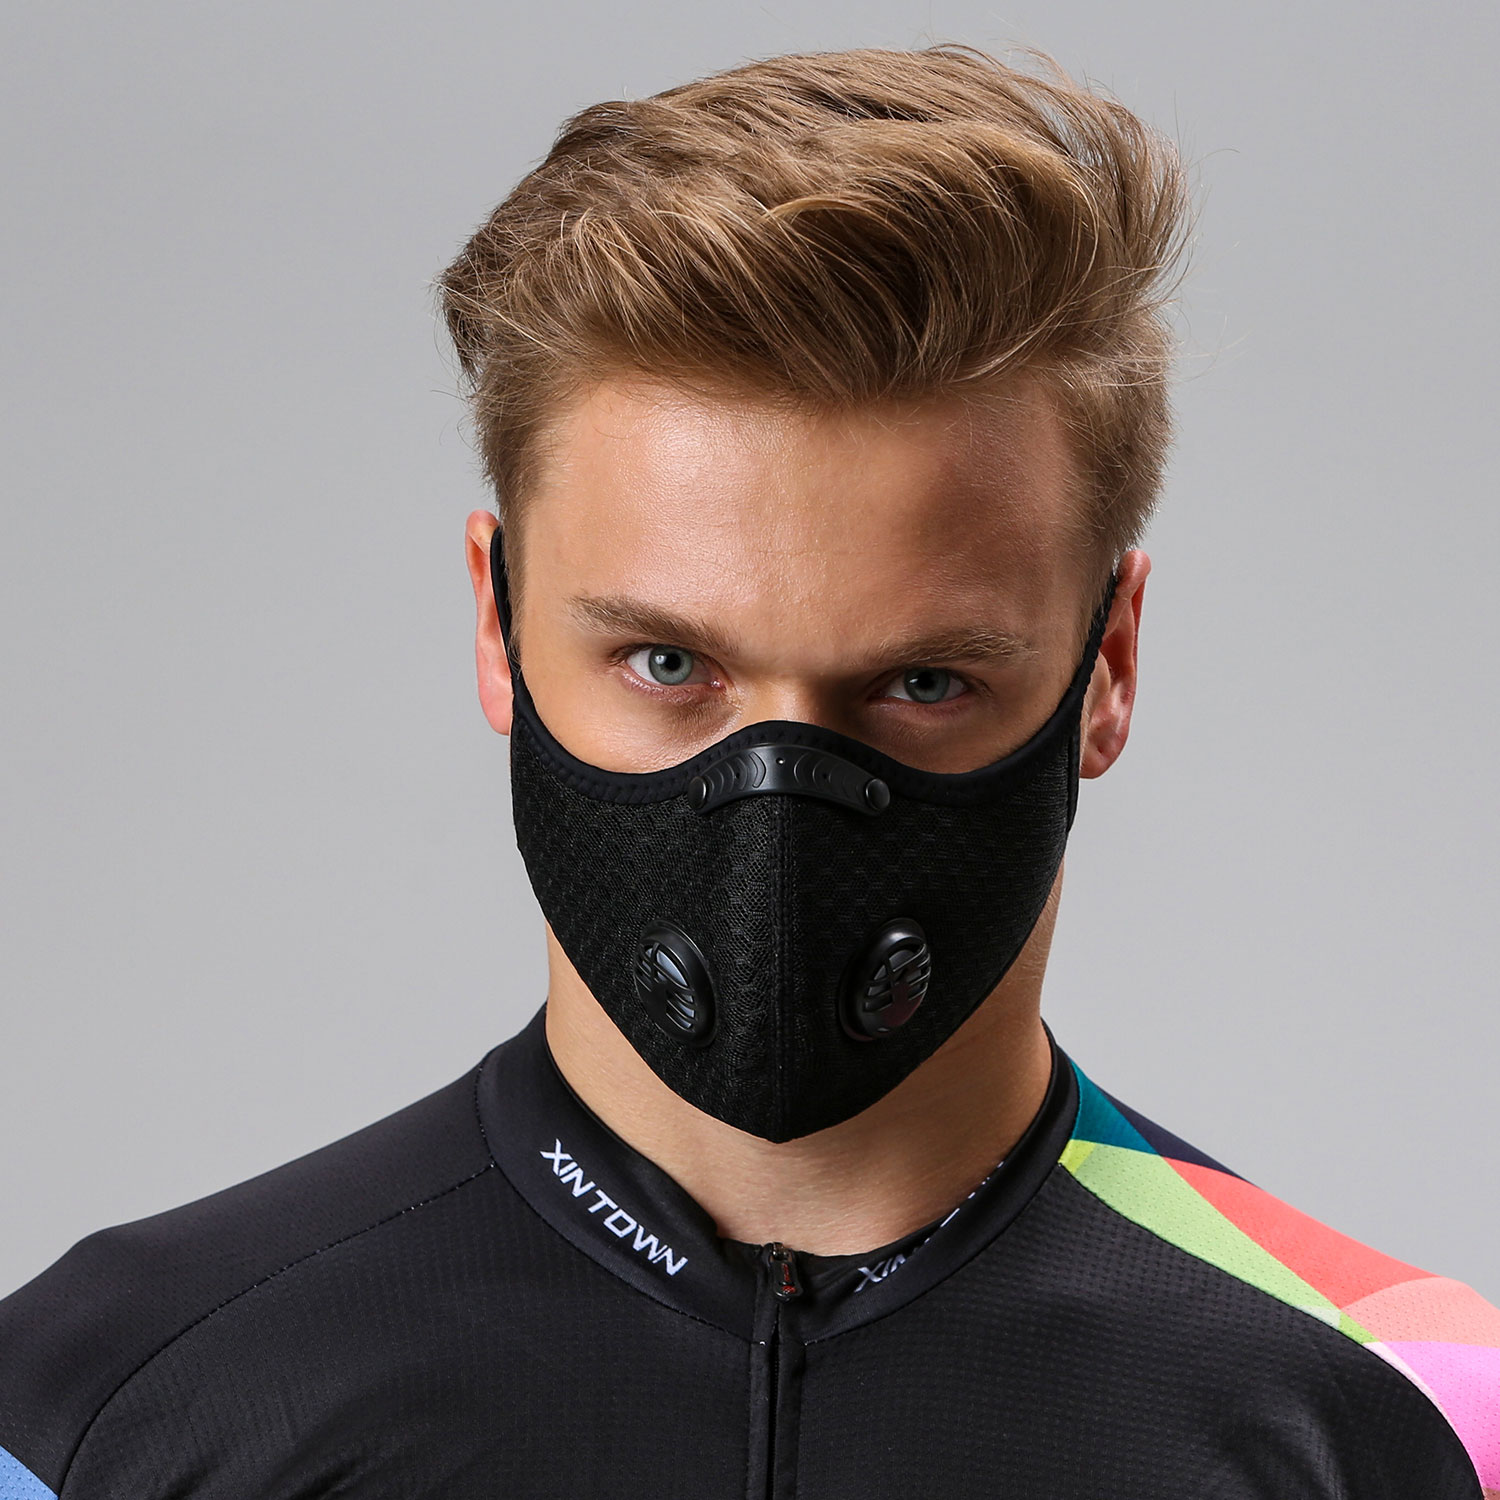 Cycling Mask With Filter Protective Cycling Mask Activated Carbon Anti-Pollution Sport Training Bike Facemask black